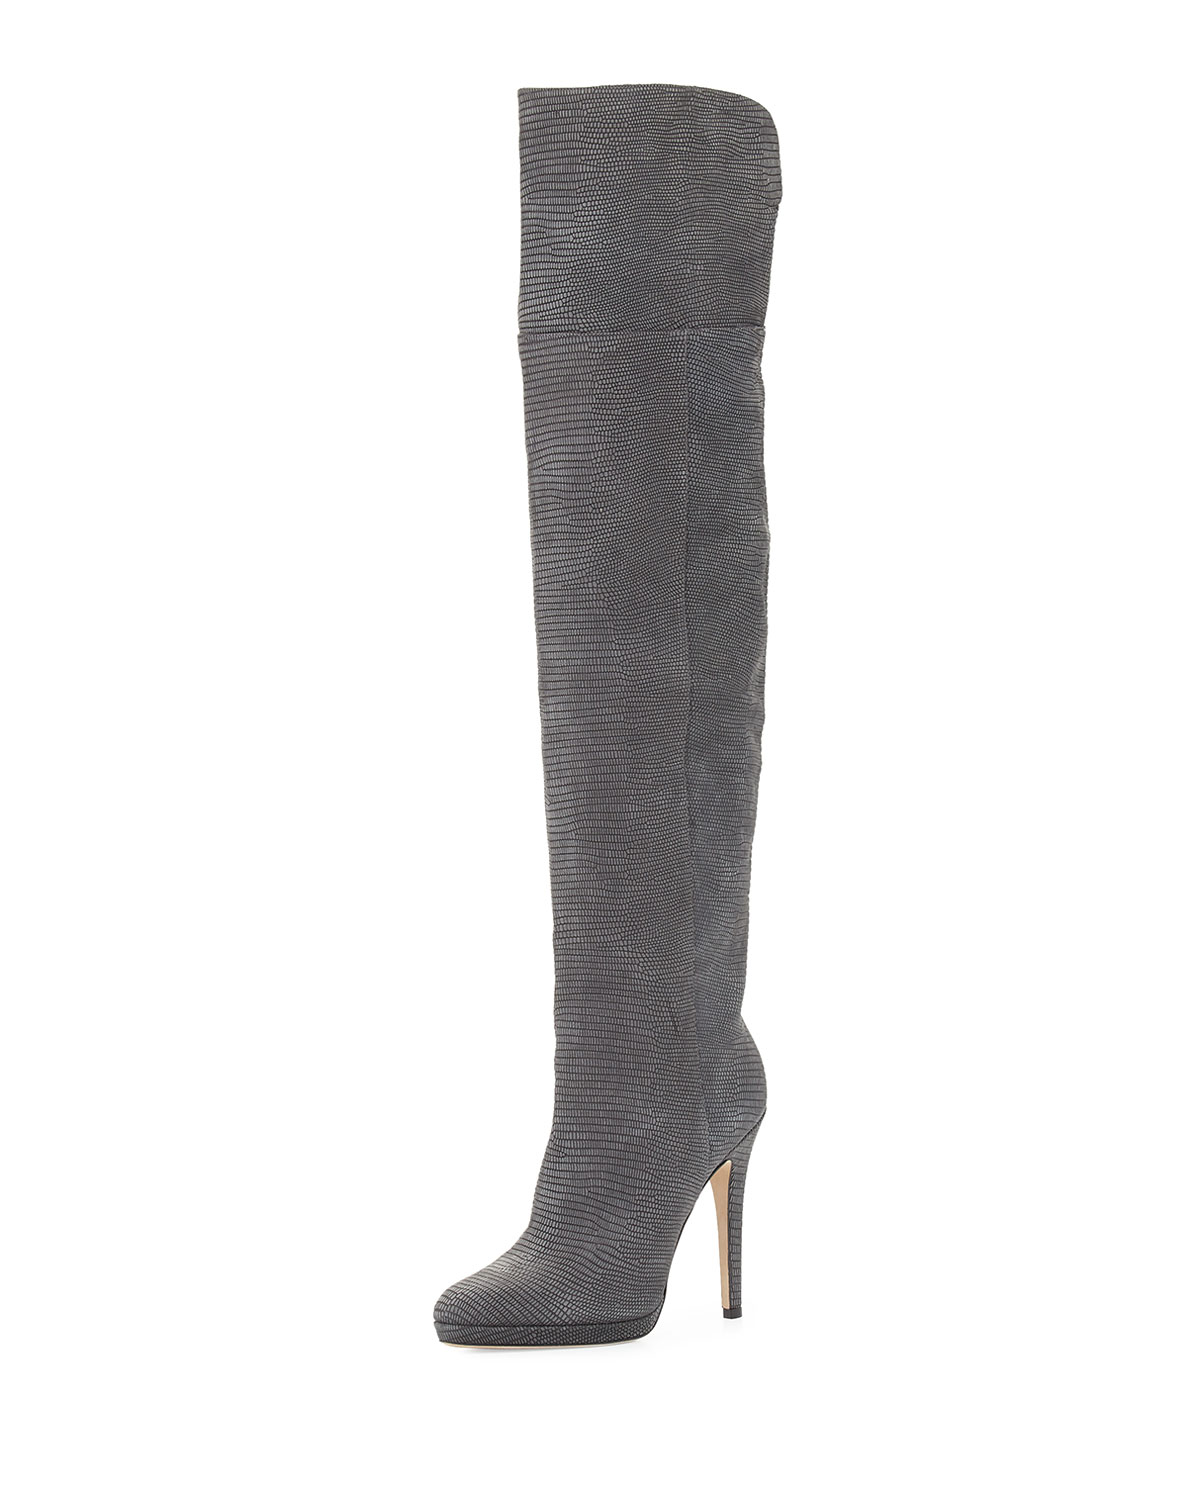 737492dccbb Jimmy Choo Giselle Over-the-Knee Leather Boot